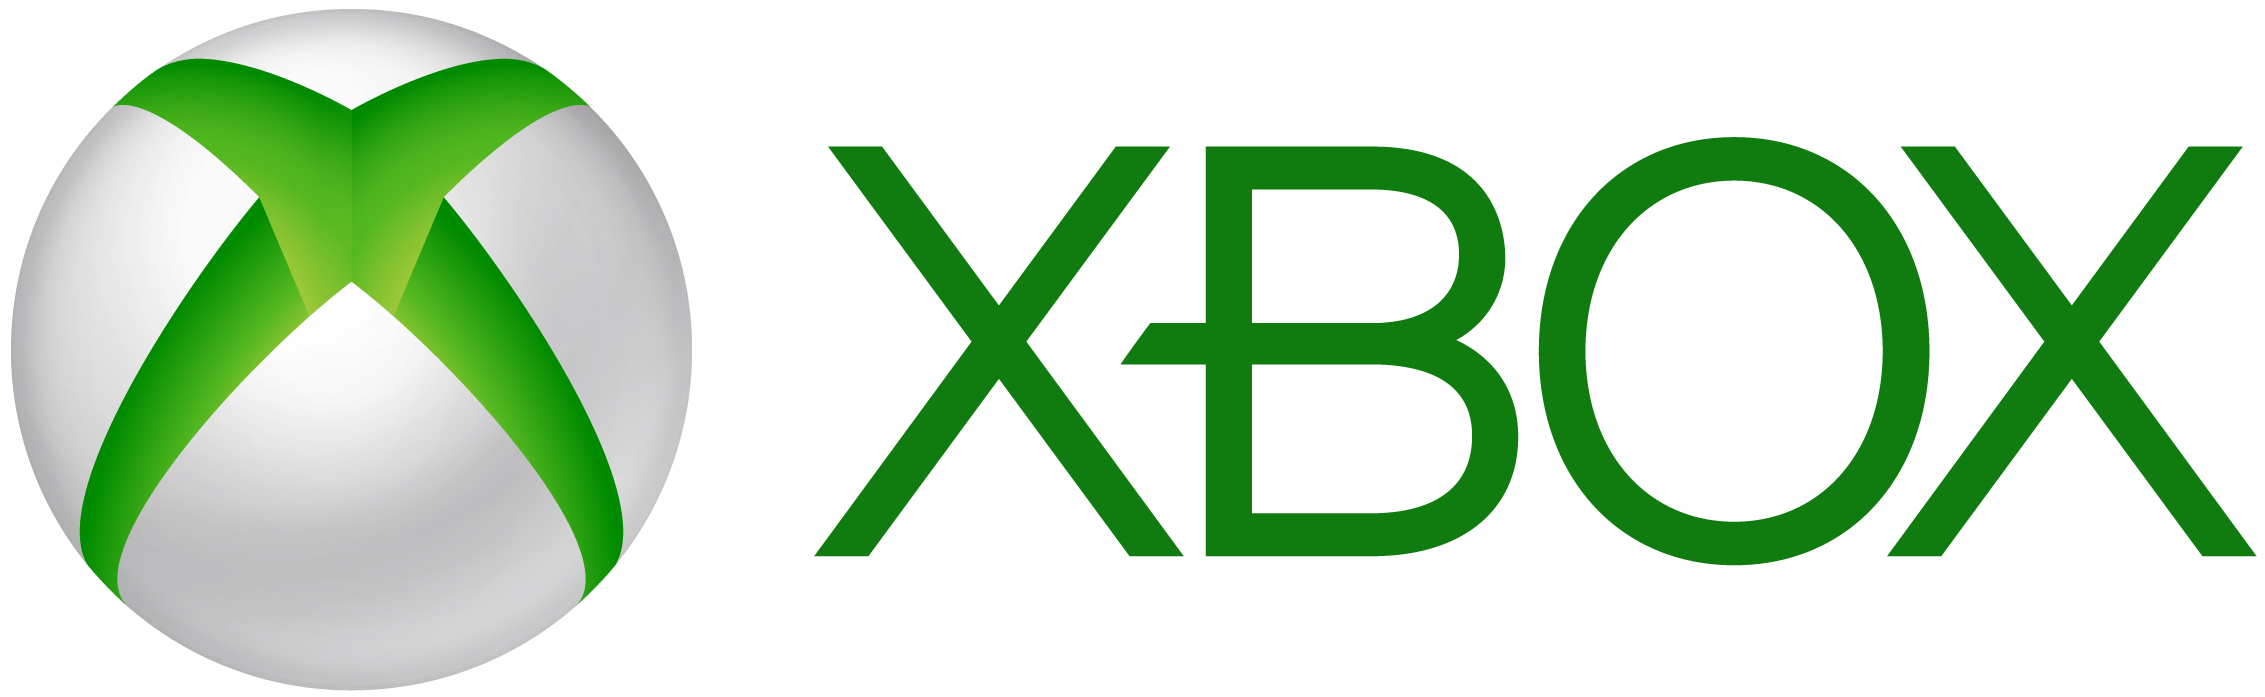 Xbox 2013 Logo FACES